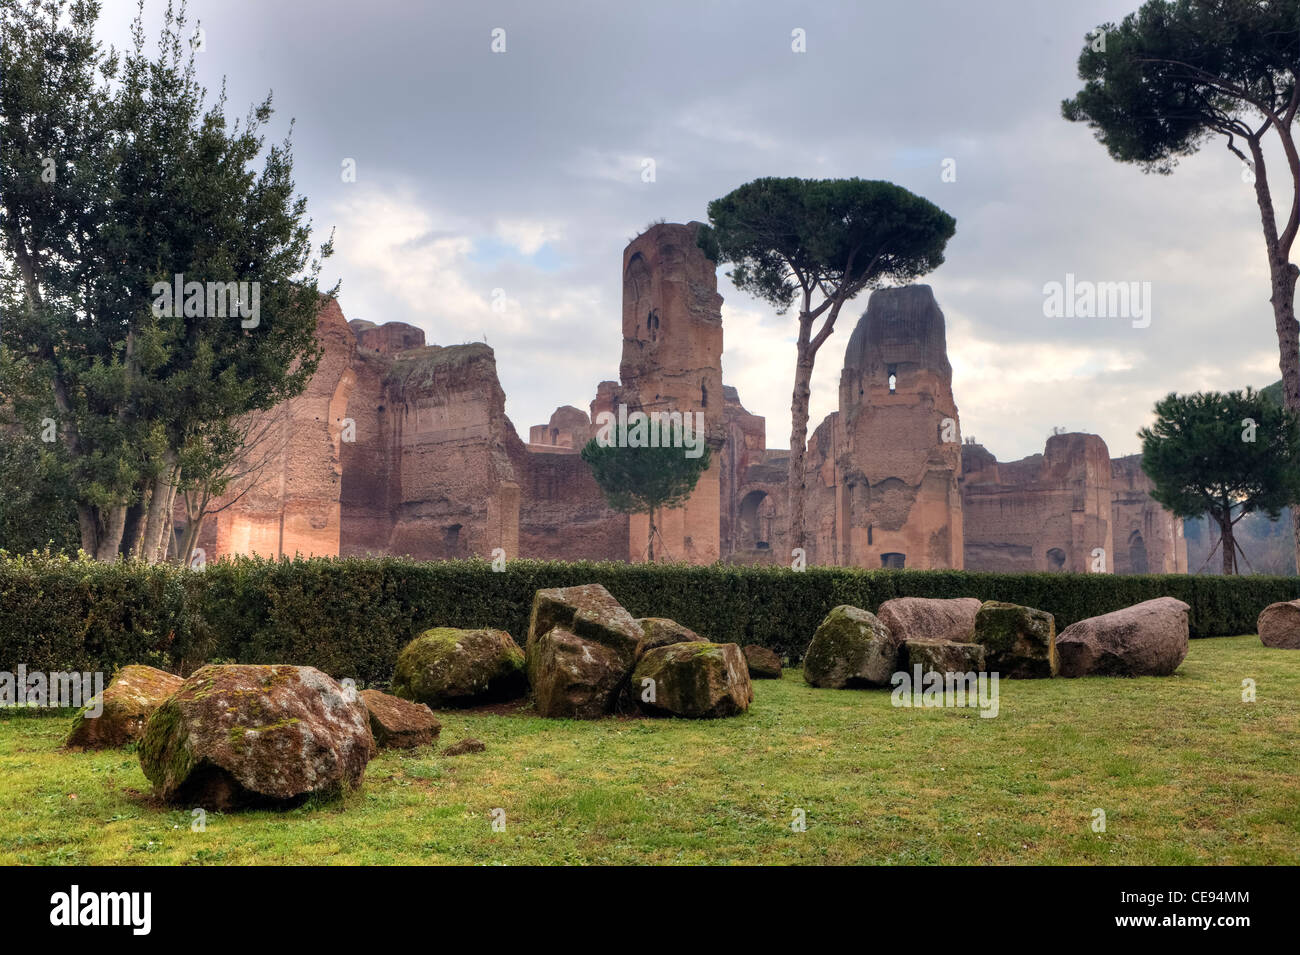 The Caracalla baths are ruins of an ancient bath facility in Rome with an upstream park - Stock Image